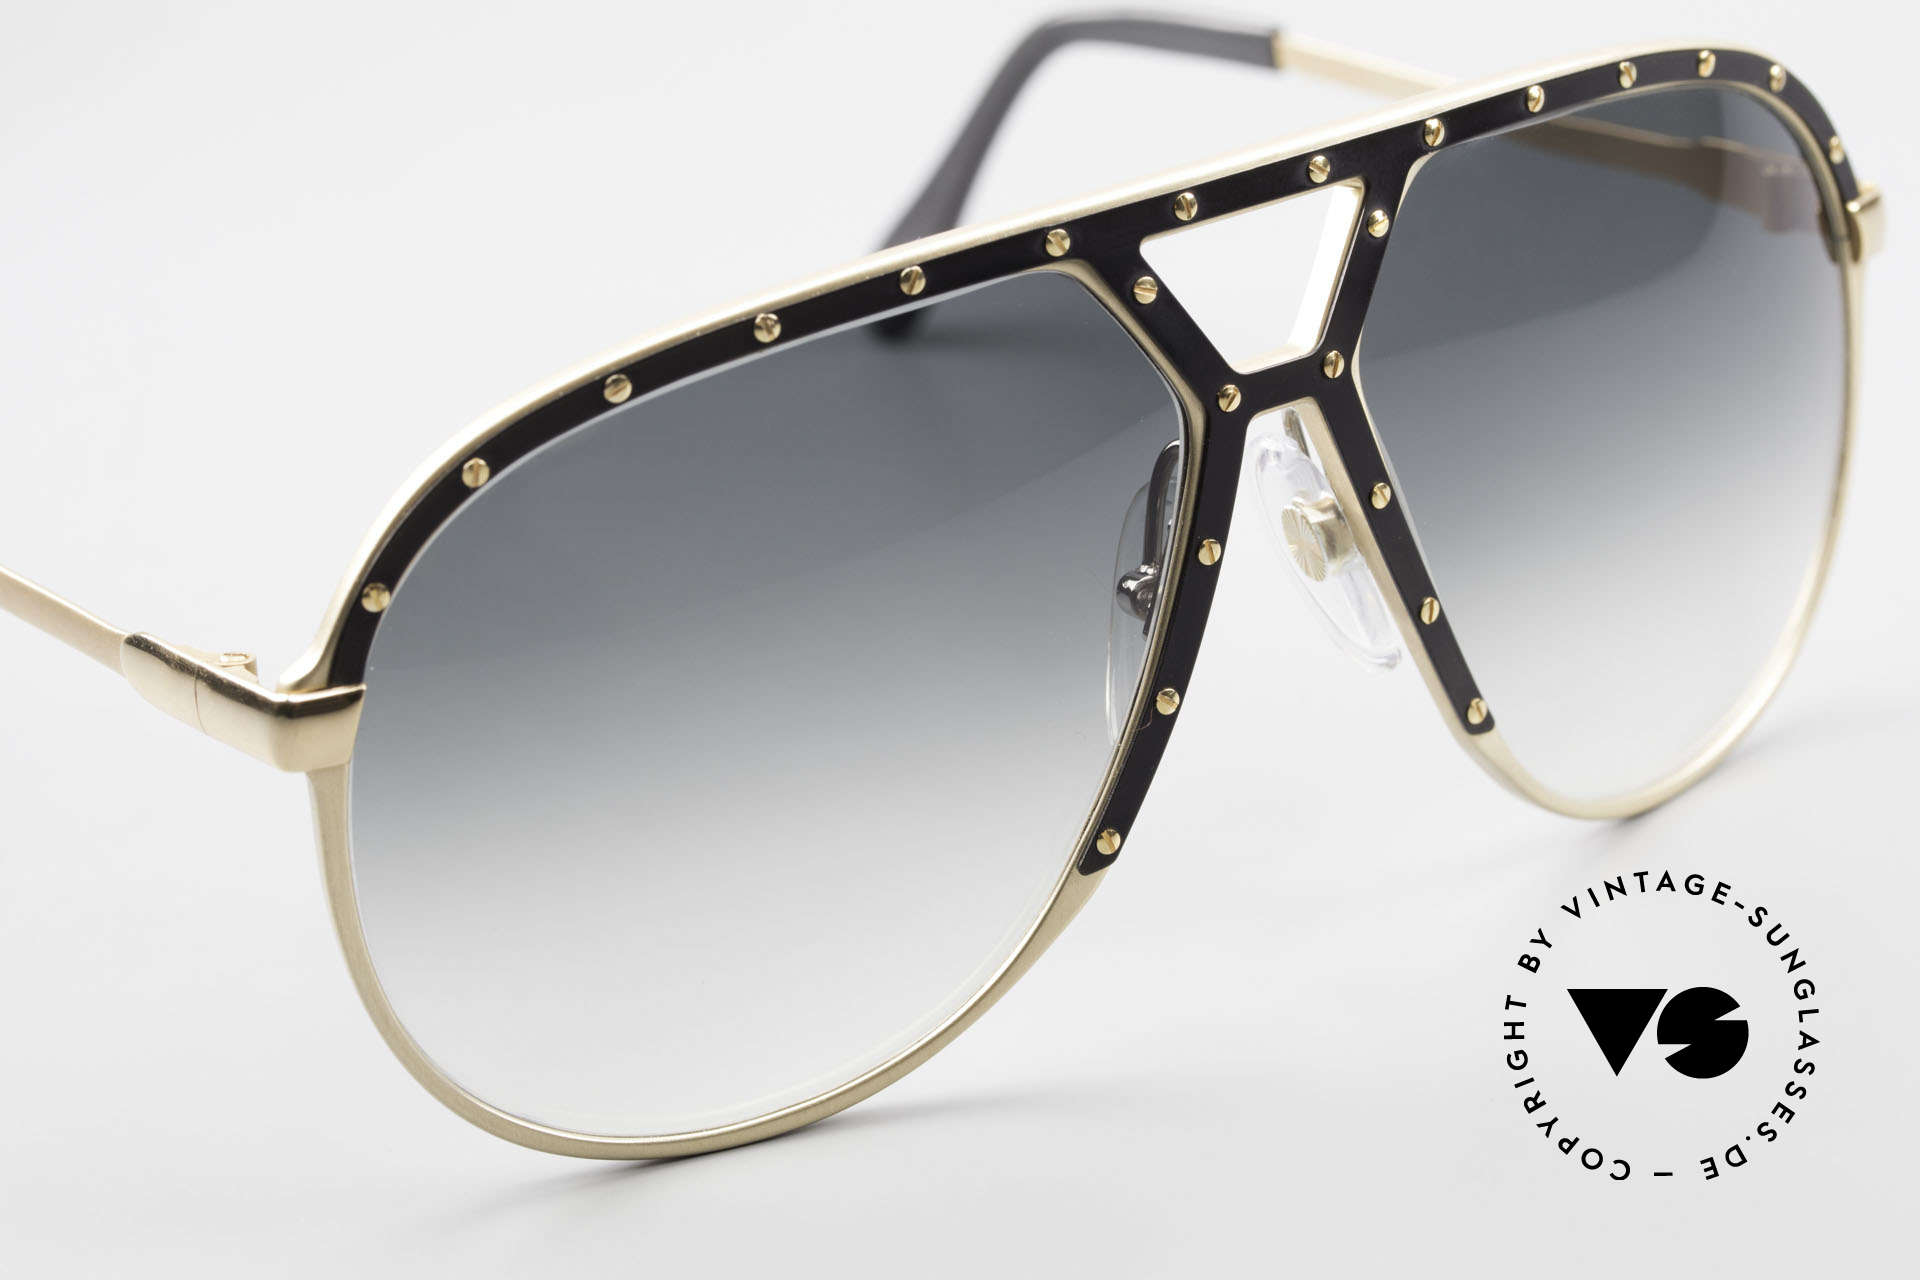 Alpina M1 Old 80's West Germany Shades, unworn collector's item comes with a Bvlgari case, Made for Men